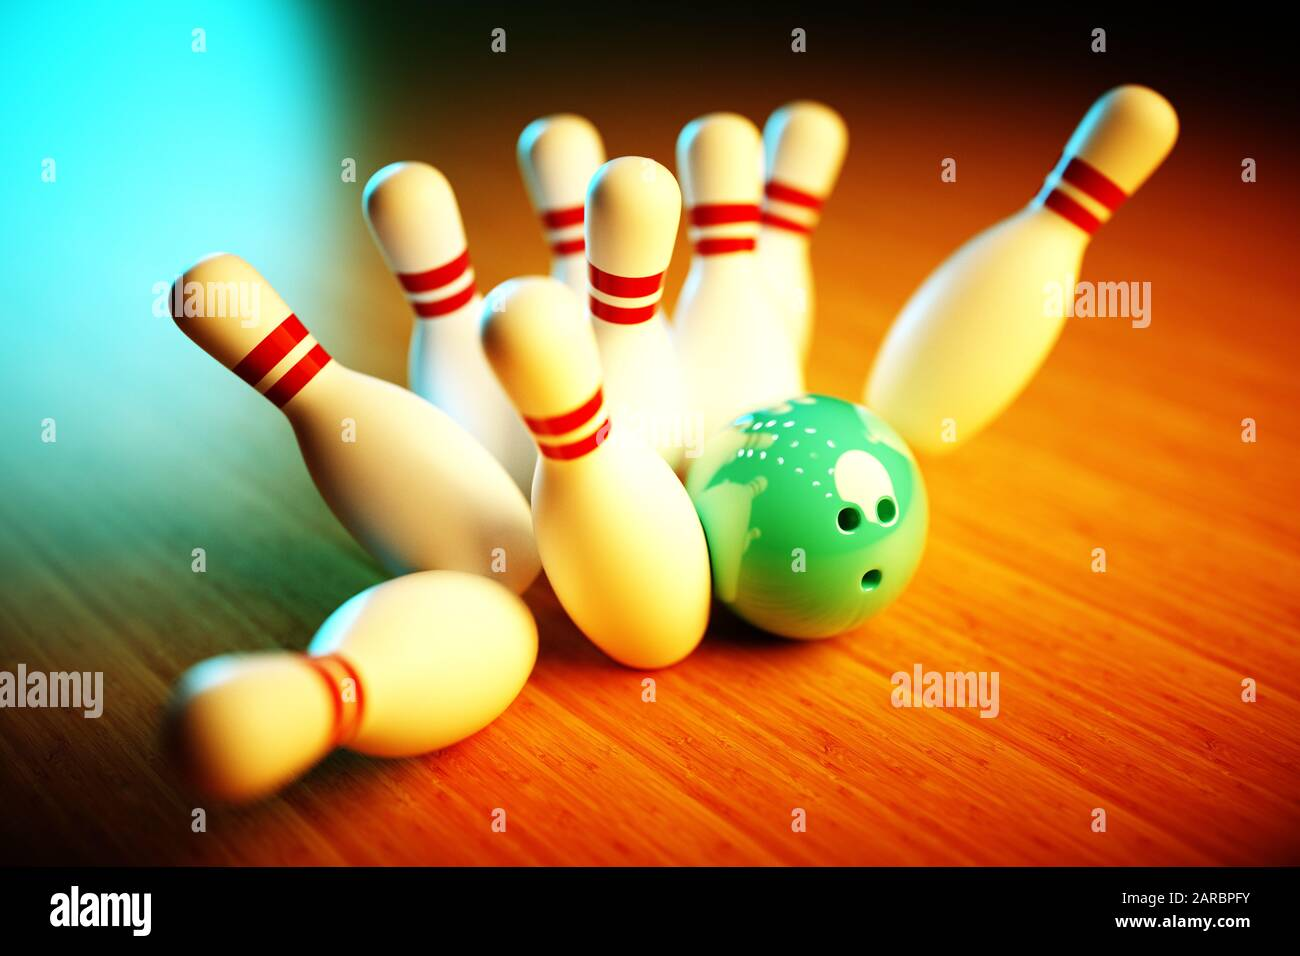 Duckpin Bowling Ball Pin Clip Art - Black And White - Pins Images  Transparent PNG